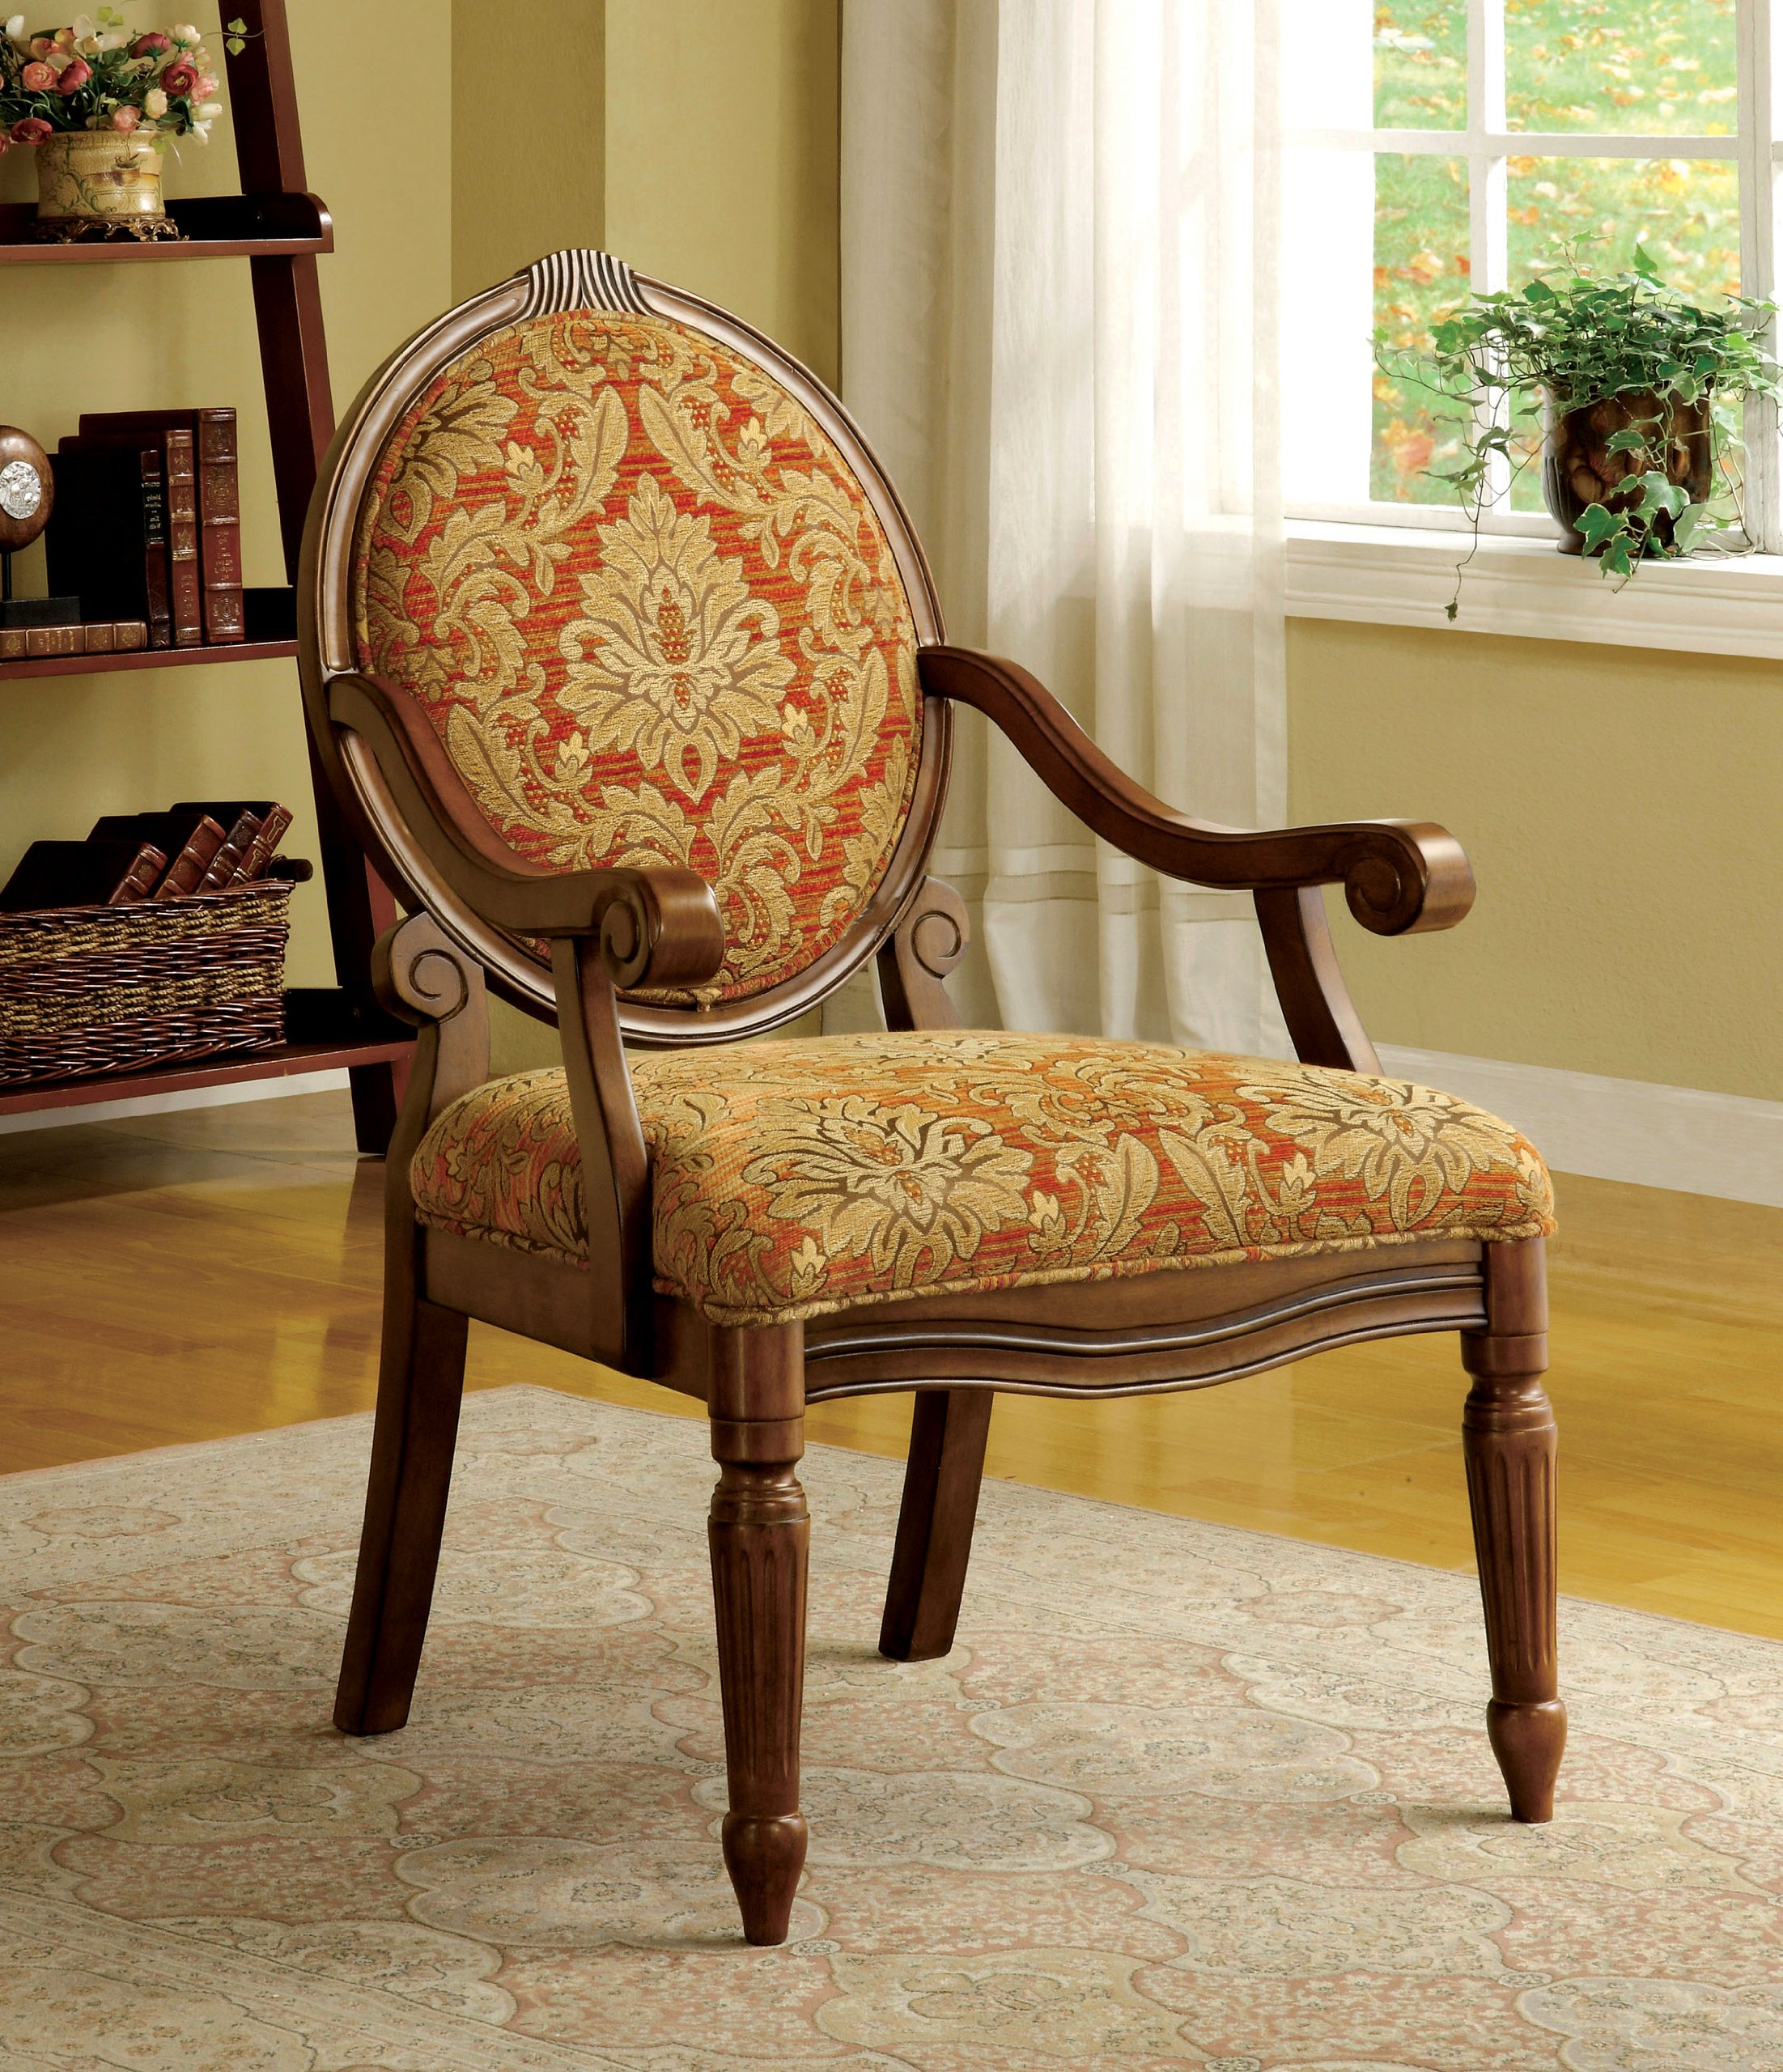 Buy Antique Armchair Now!